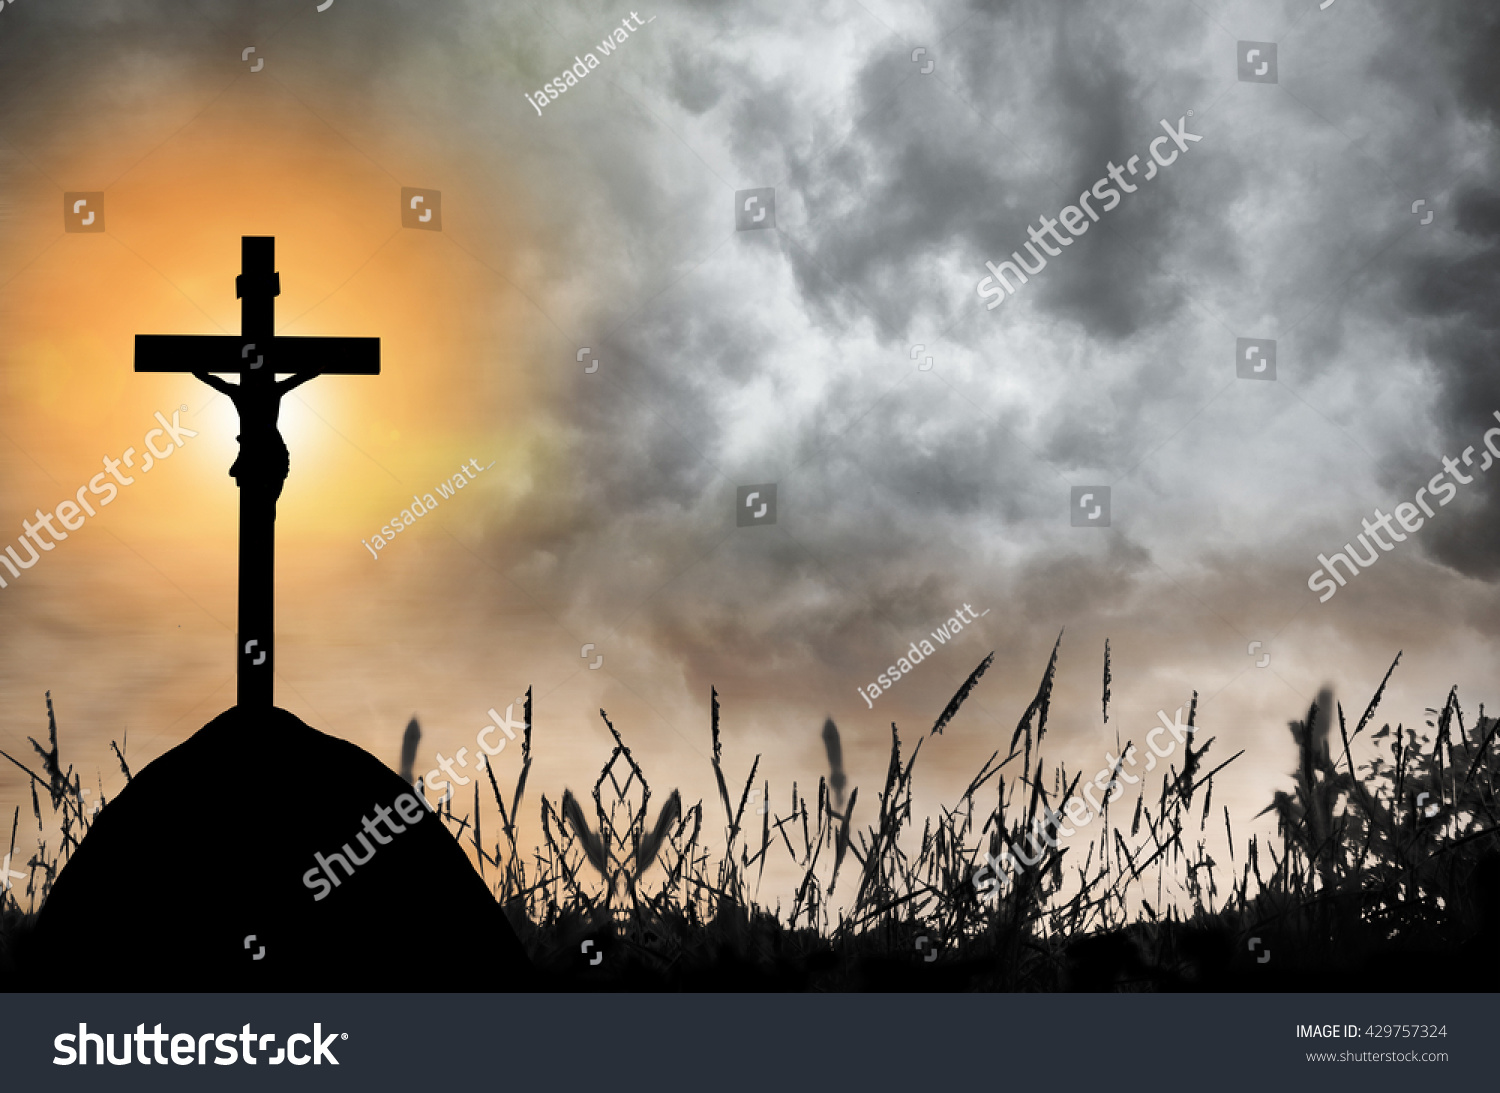 Silhouette of the holy cross on background of storm clouds stock - Silhouette Of The Holy Cross On Background Of Storm Clouds Stock Jpg 1500x1093 Storm And